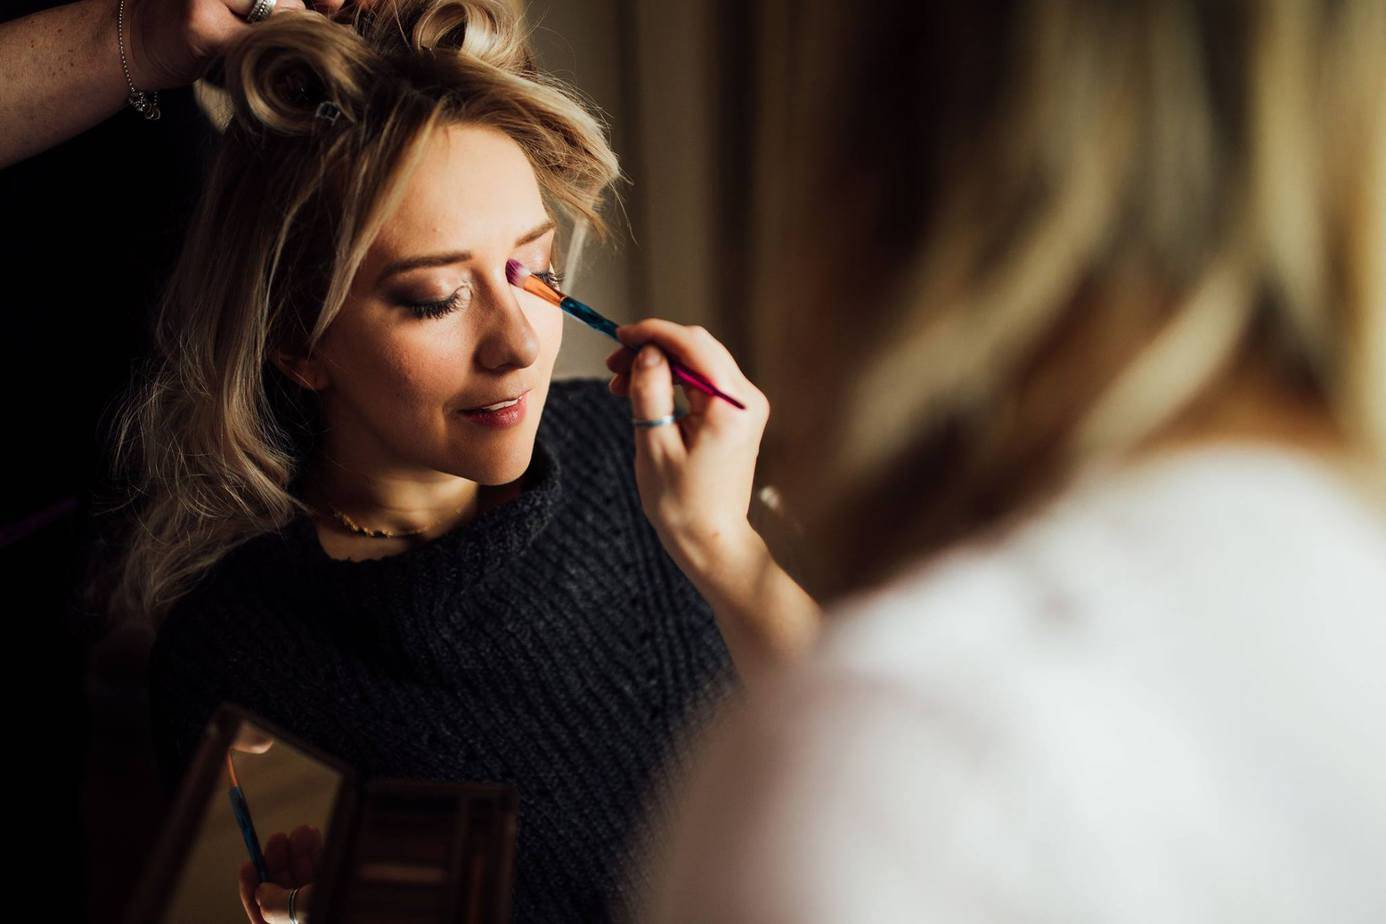 Behind the scenes photo taken at Skelwith Bridge Hotel in The Lake District, showing mubyleigh applying mascara flawless bride's eyelashes. Makeup created by Yorkshire based, professional Hair Stylist & Makeup Artist mubyleigh.